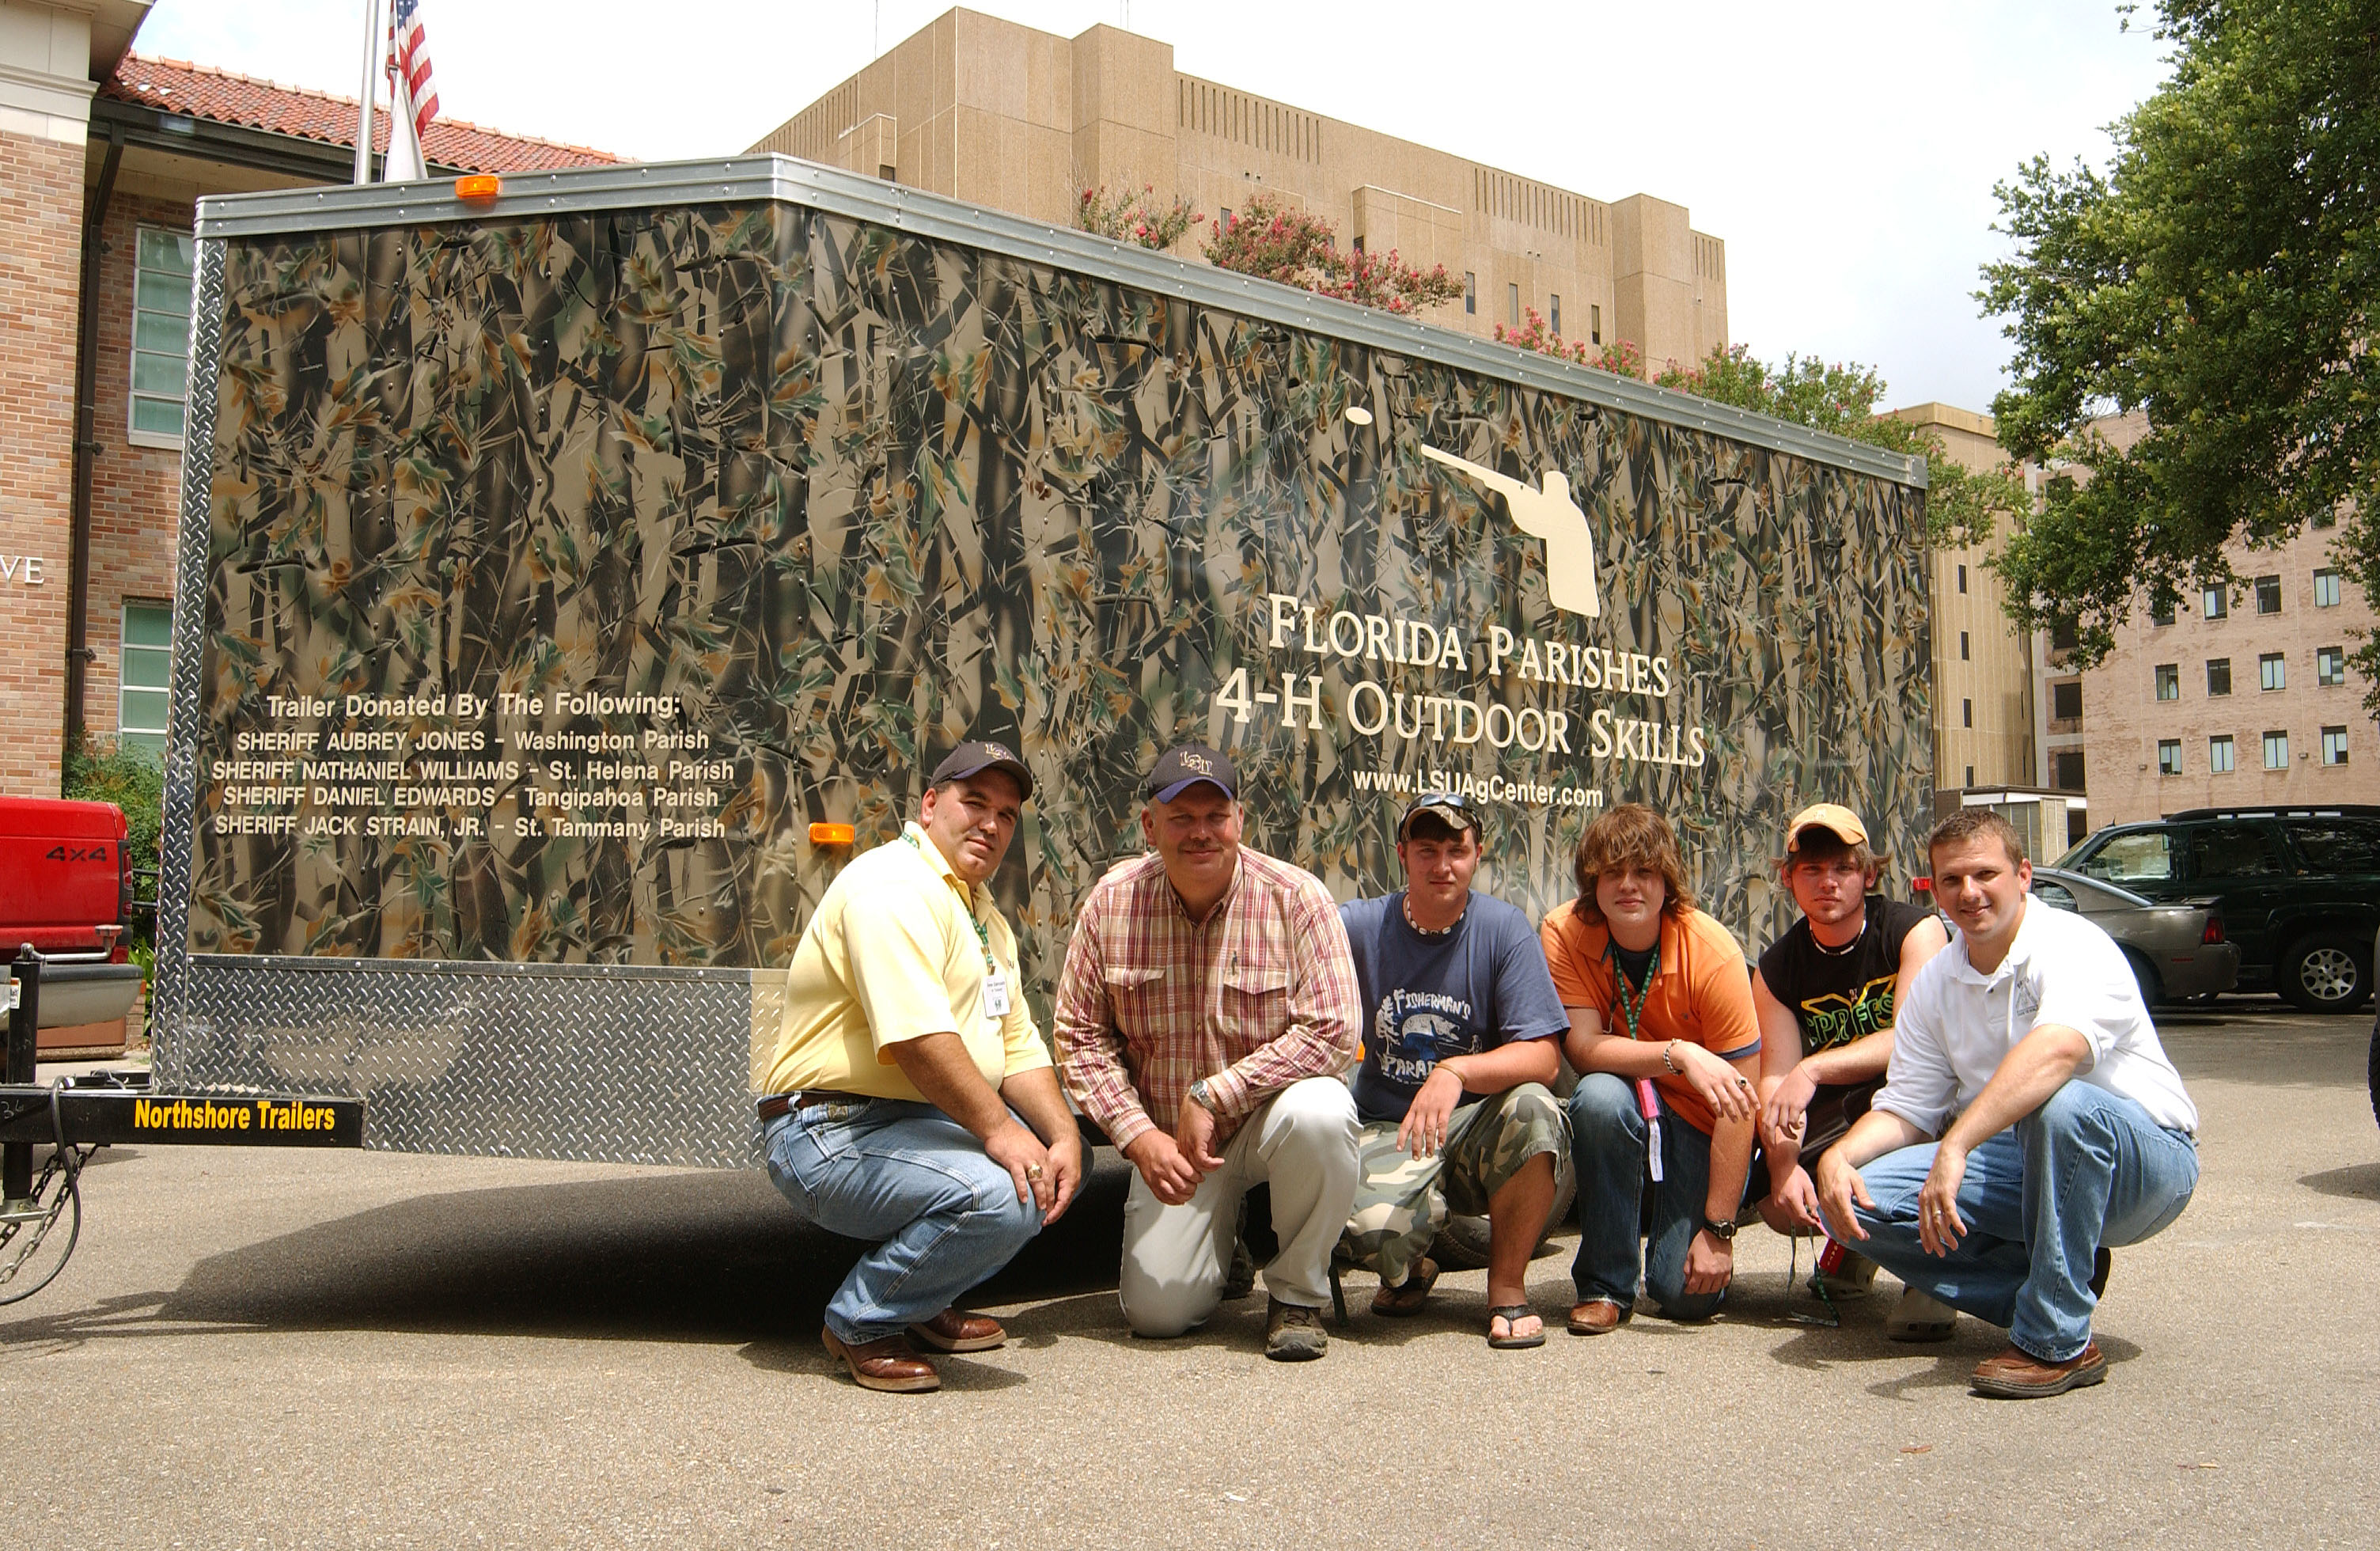 LSU AgCenter Outdoor Skills Program Gets Trailer Compliments Of 4 Sheriffs